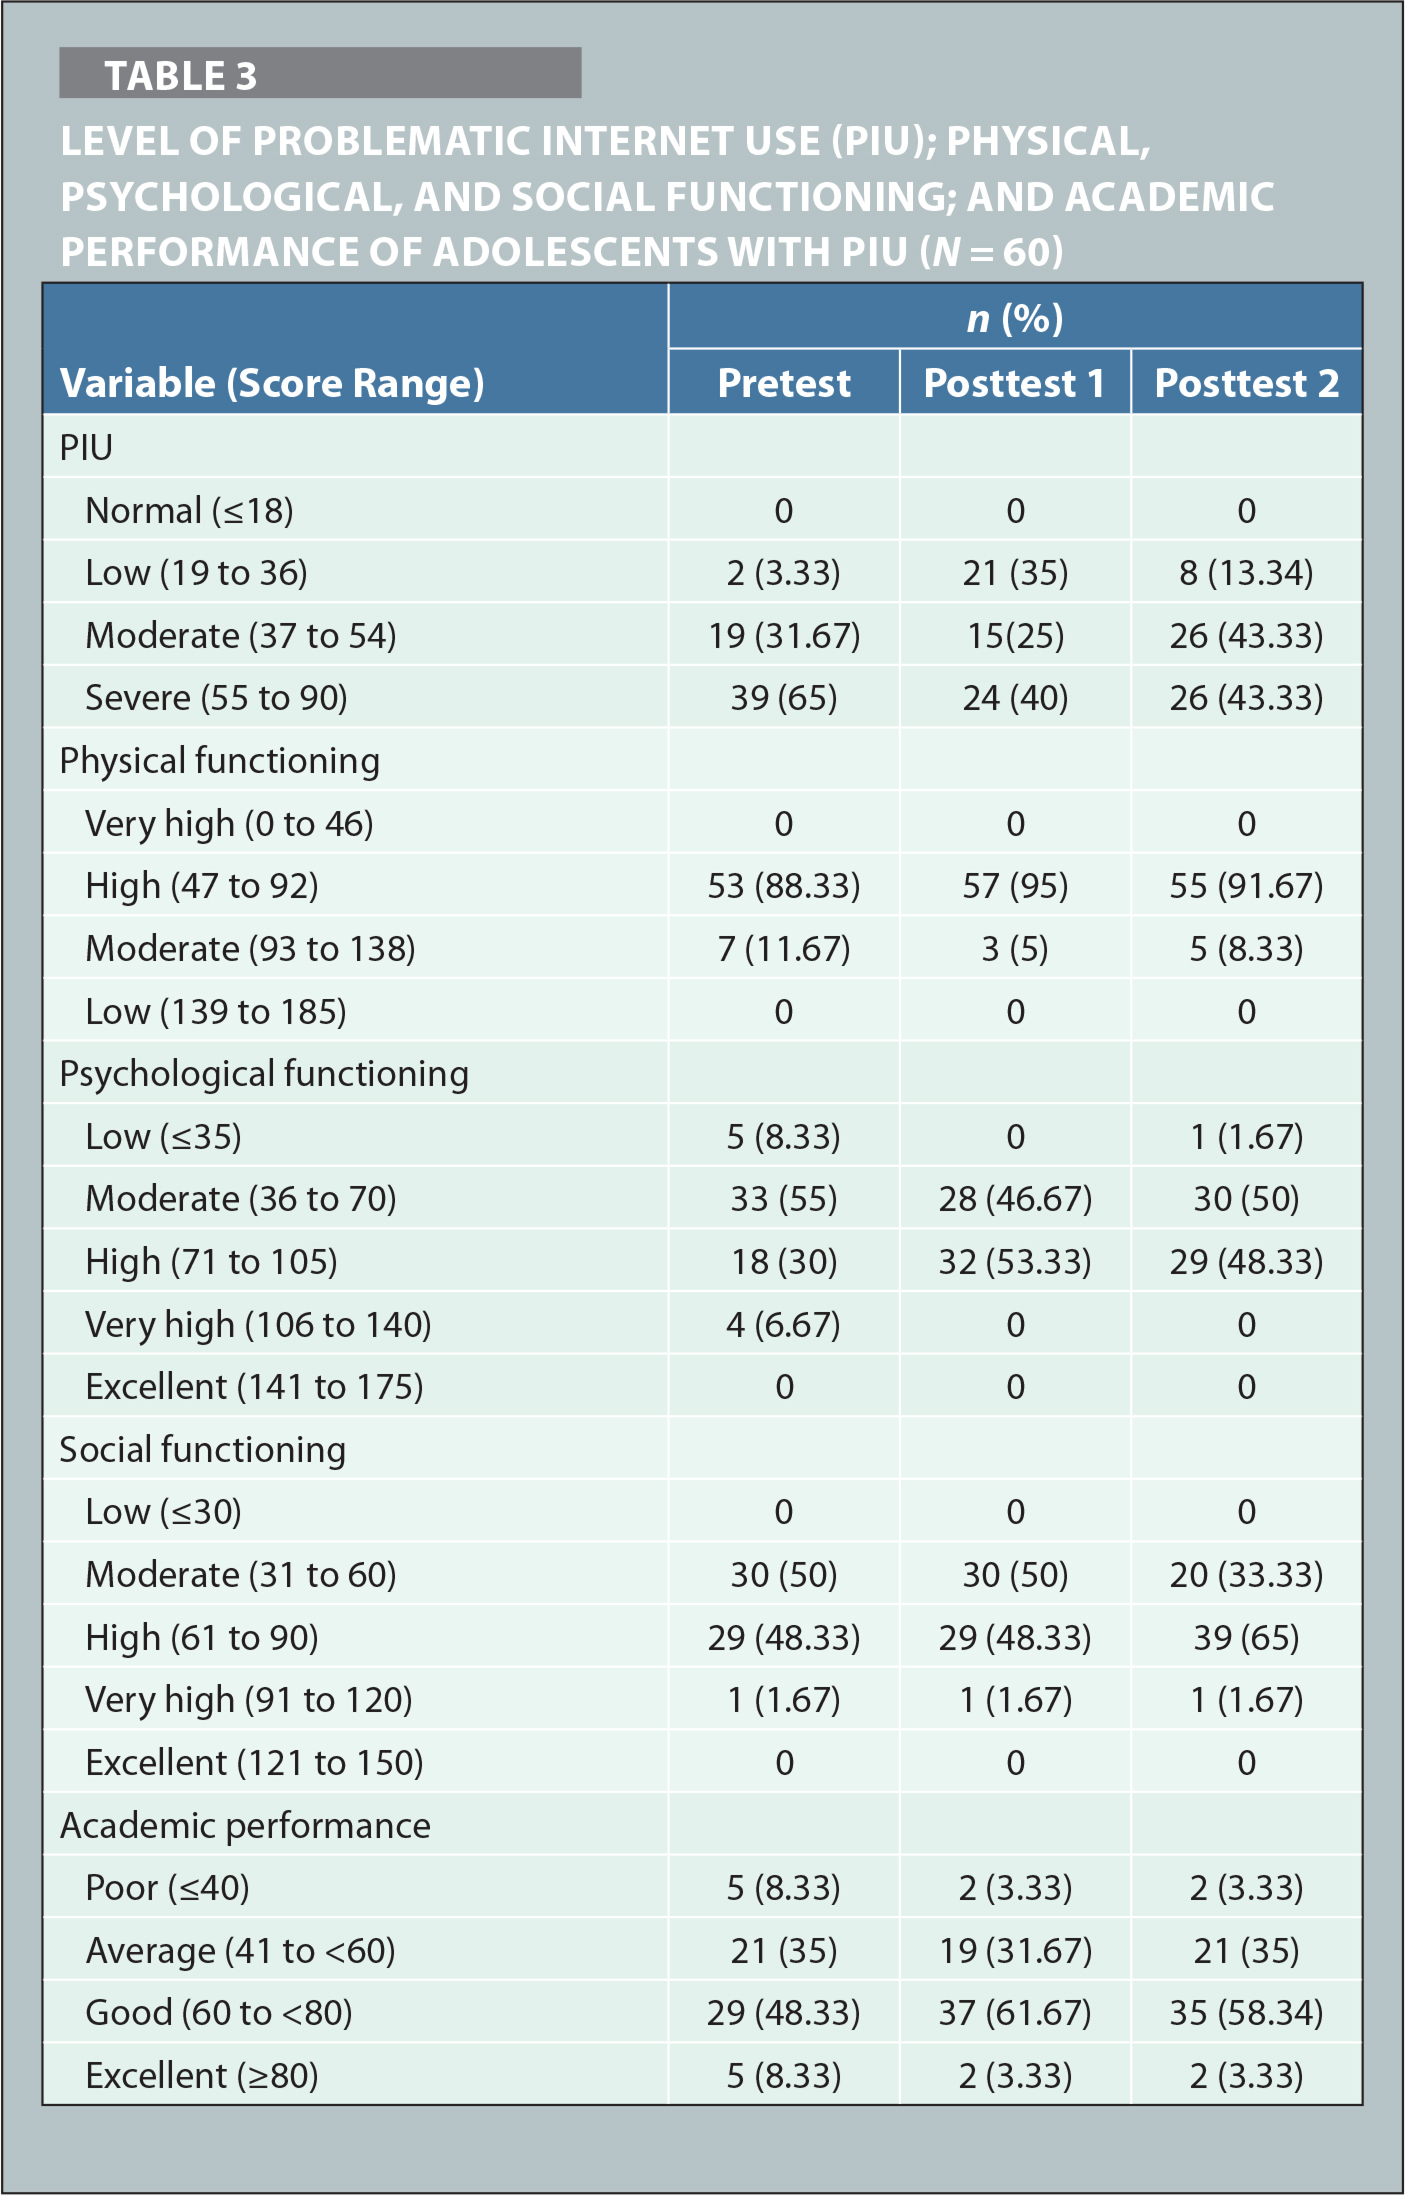 Level of Problematic Internet Use (PIU); Physical, Psychological, and Social Functioning; and Academic Performance of Adolescents with PIU (N = 60)